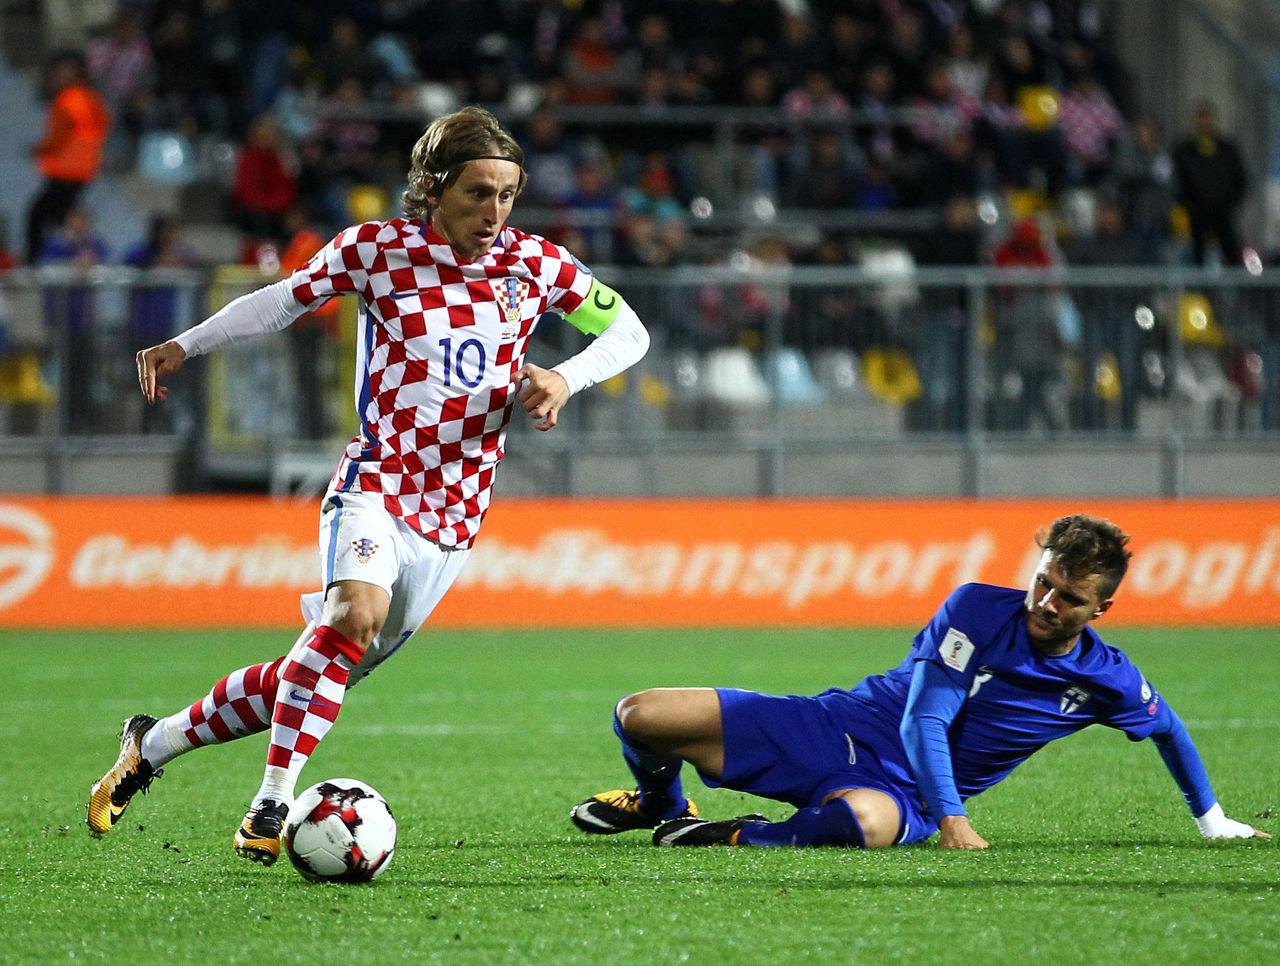 Cropped 2017 10 06t200727z 159205700 rc1fdc5604a0 rtrmadp 3 soccer worldcup cro fin